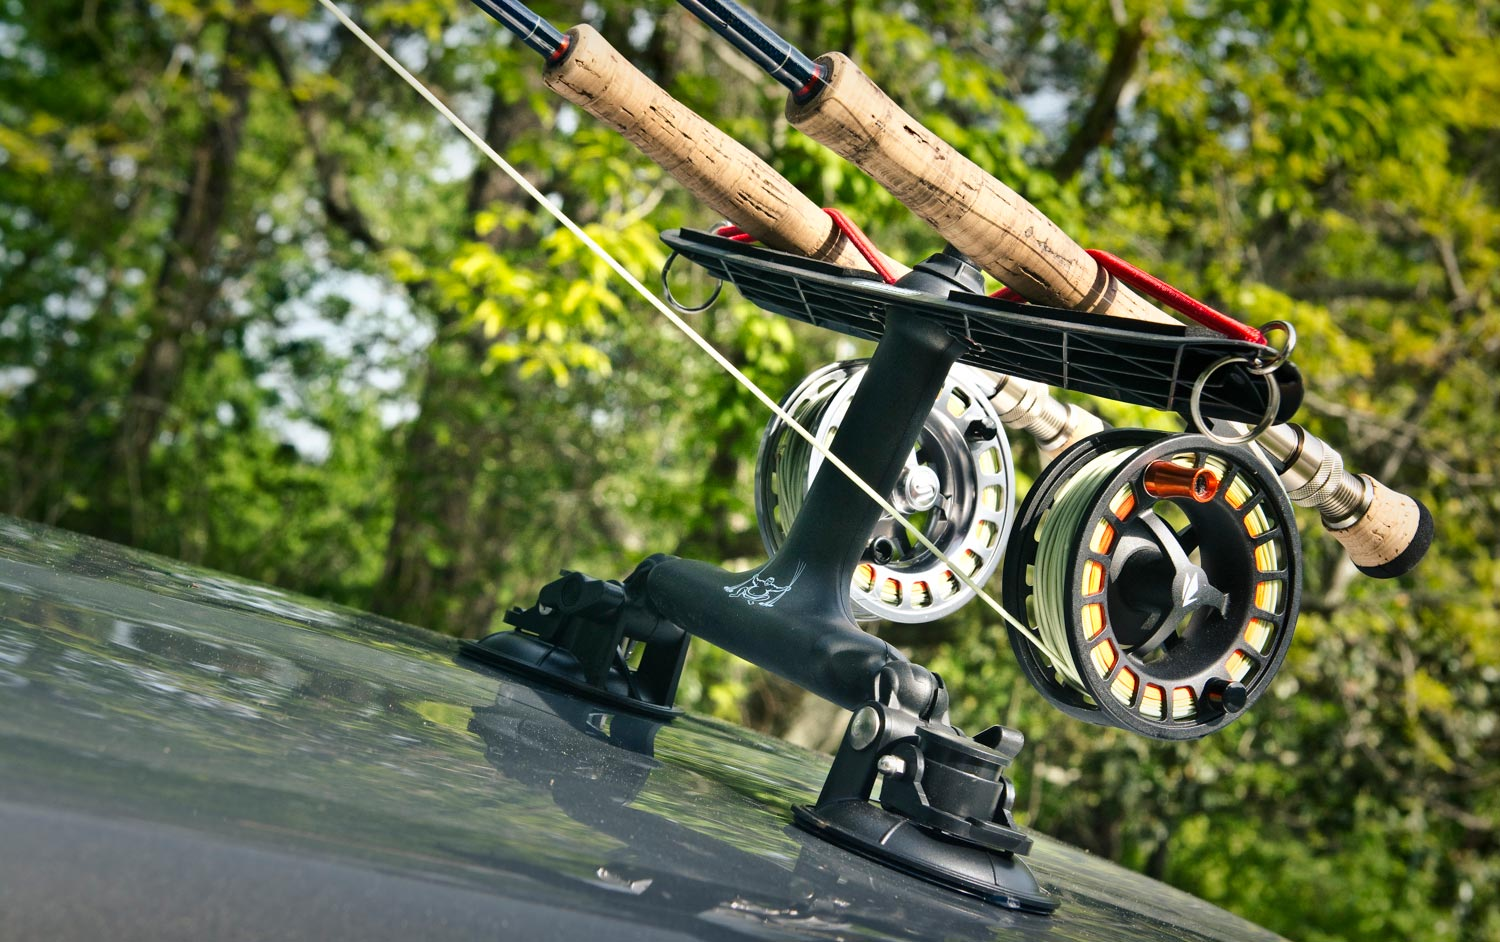 Sumo rod carrier fly fishing gink and gasoline how for Fishing pole carrier